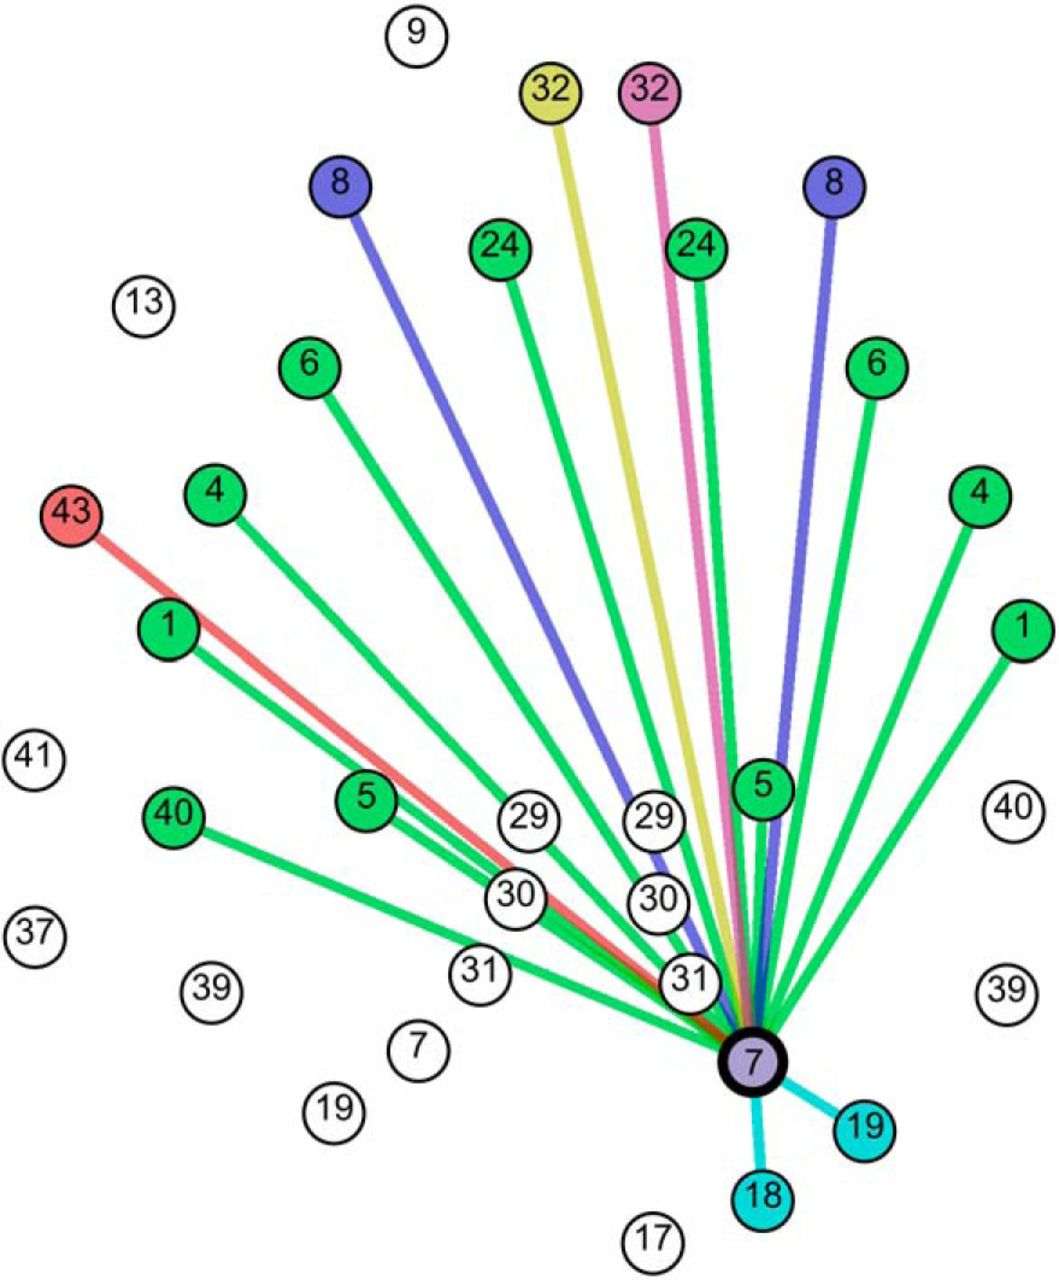 Characterization of Cortical Networks and Corticocortical